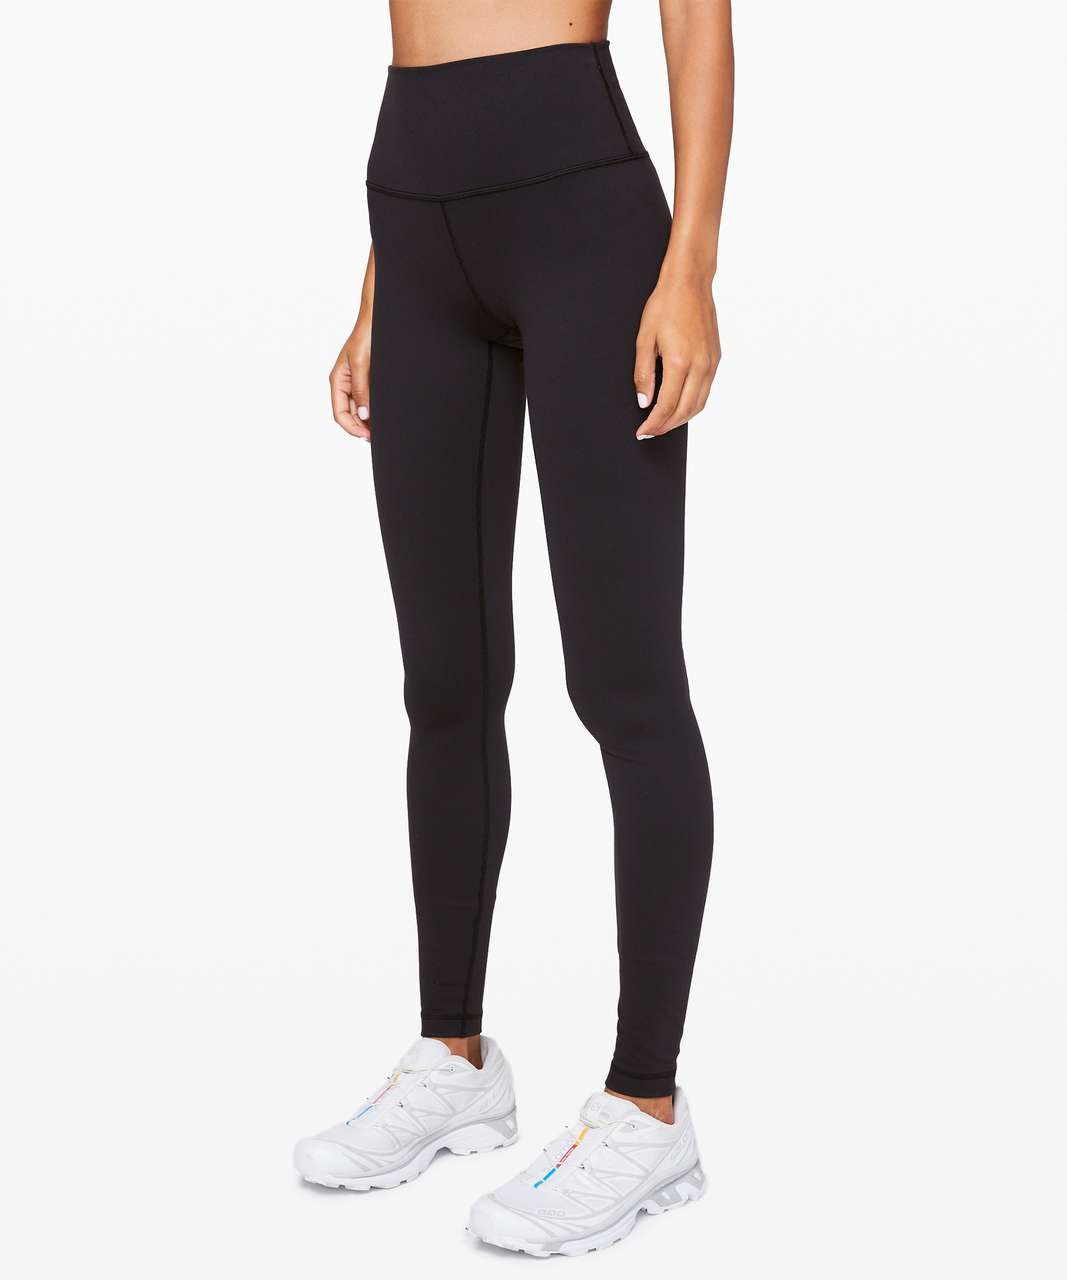 "Lululemon Wunder Under High-Rise Tight 31"" *Full-On Luon - Black (First Release)"